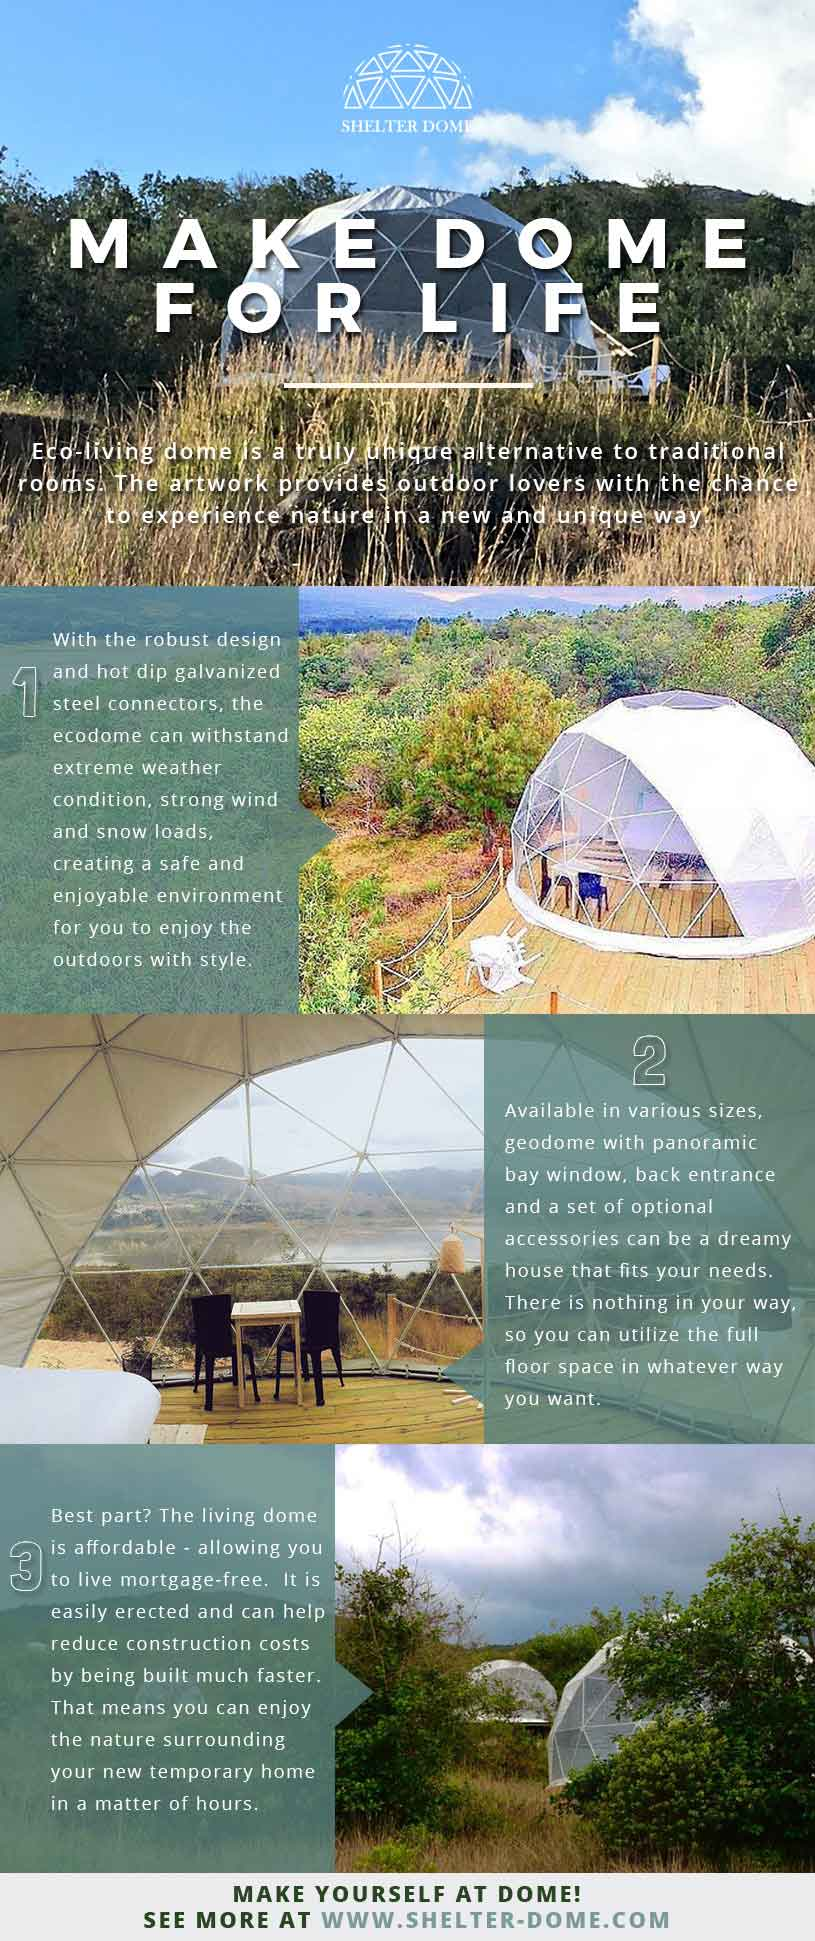 Eco dome homes make dome for life eco living dome by shelter dome